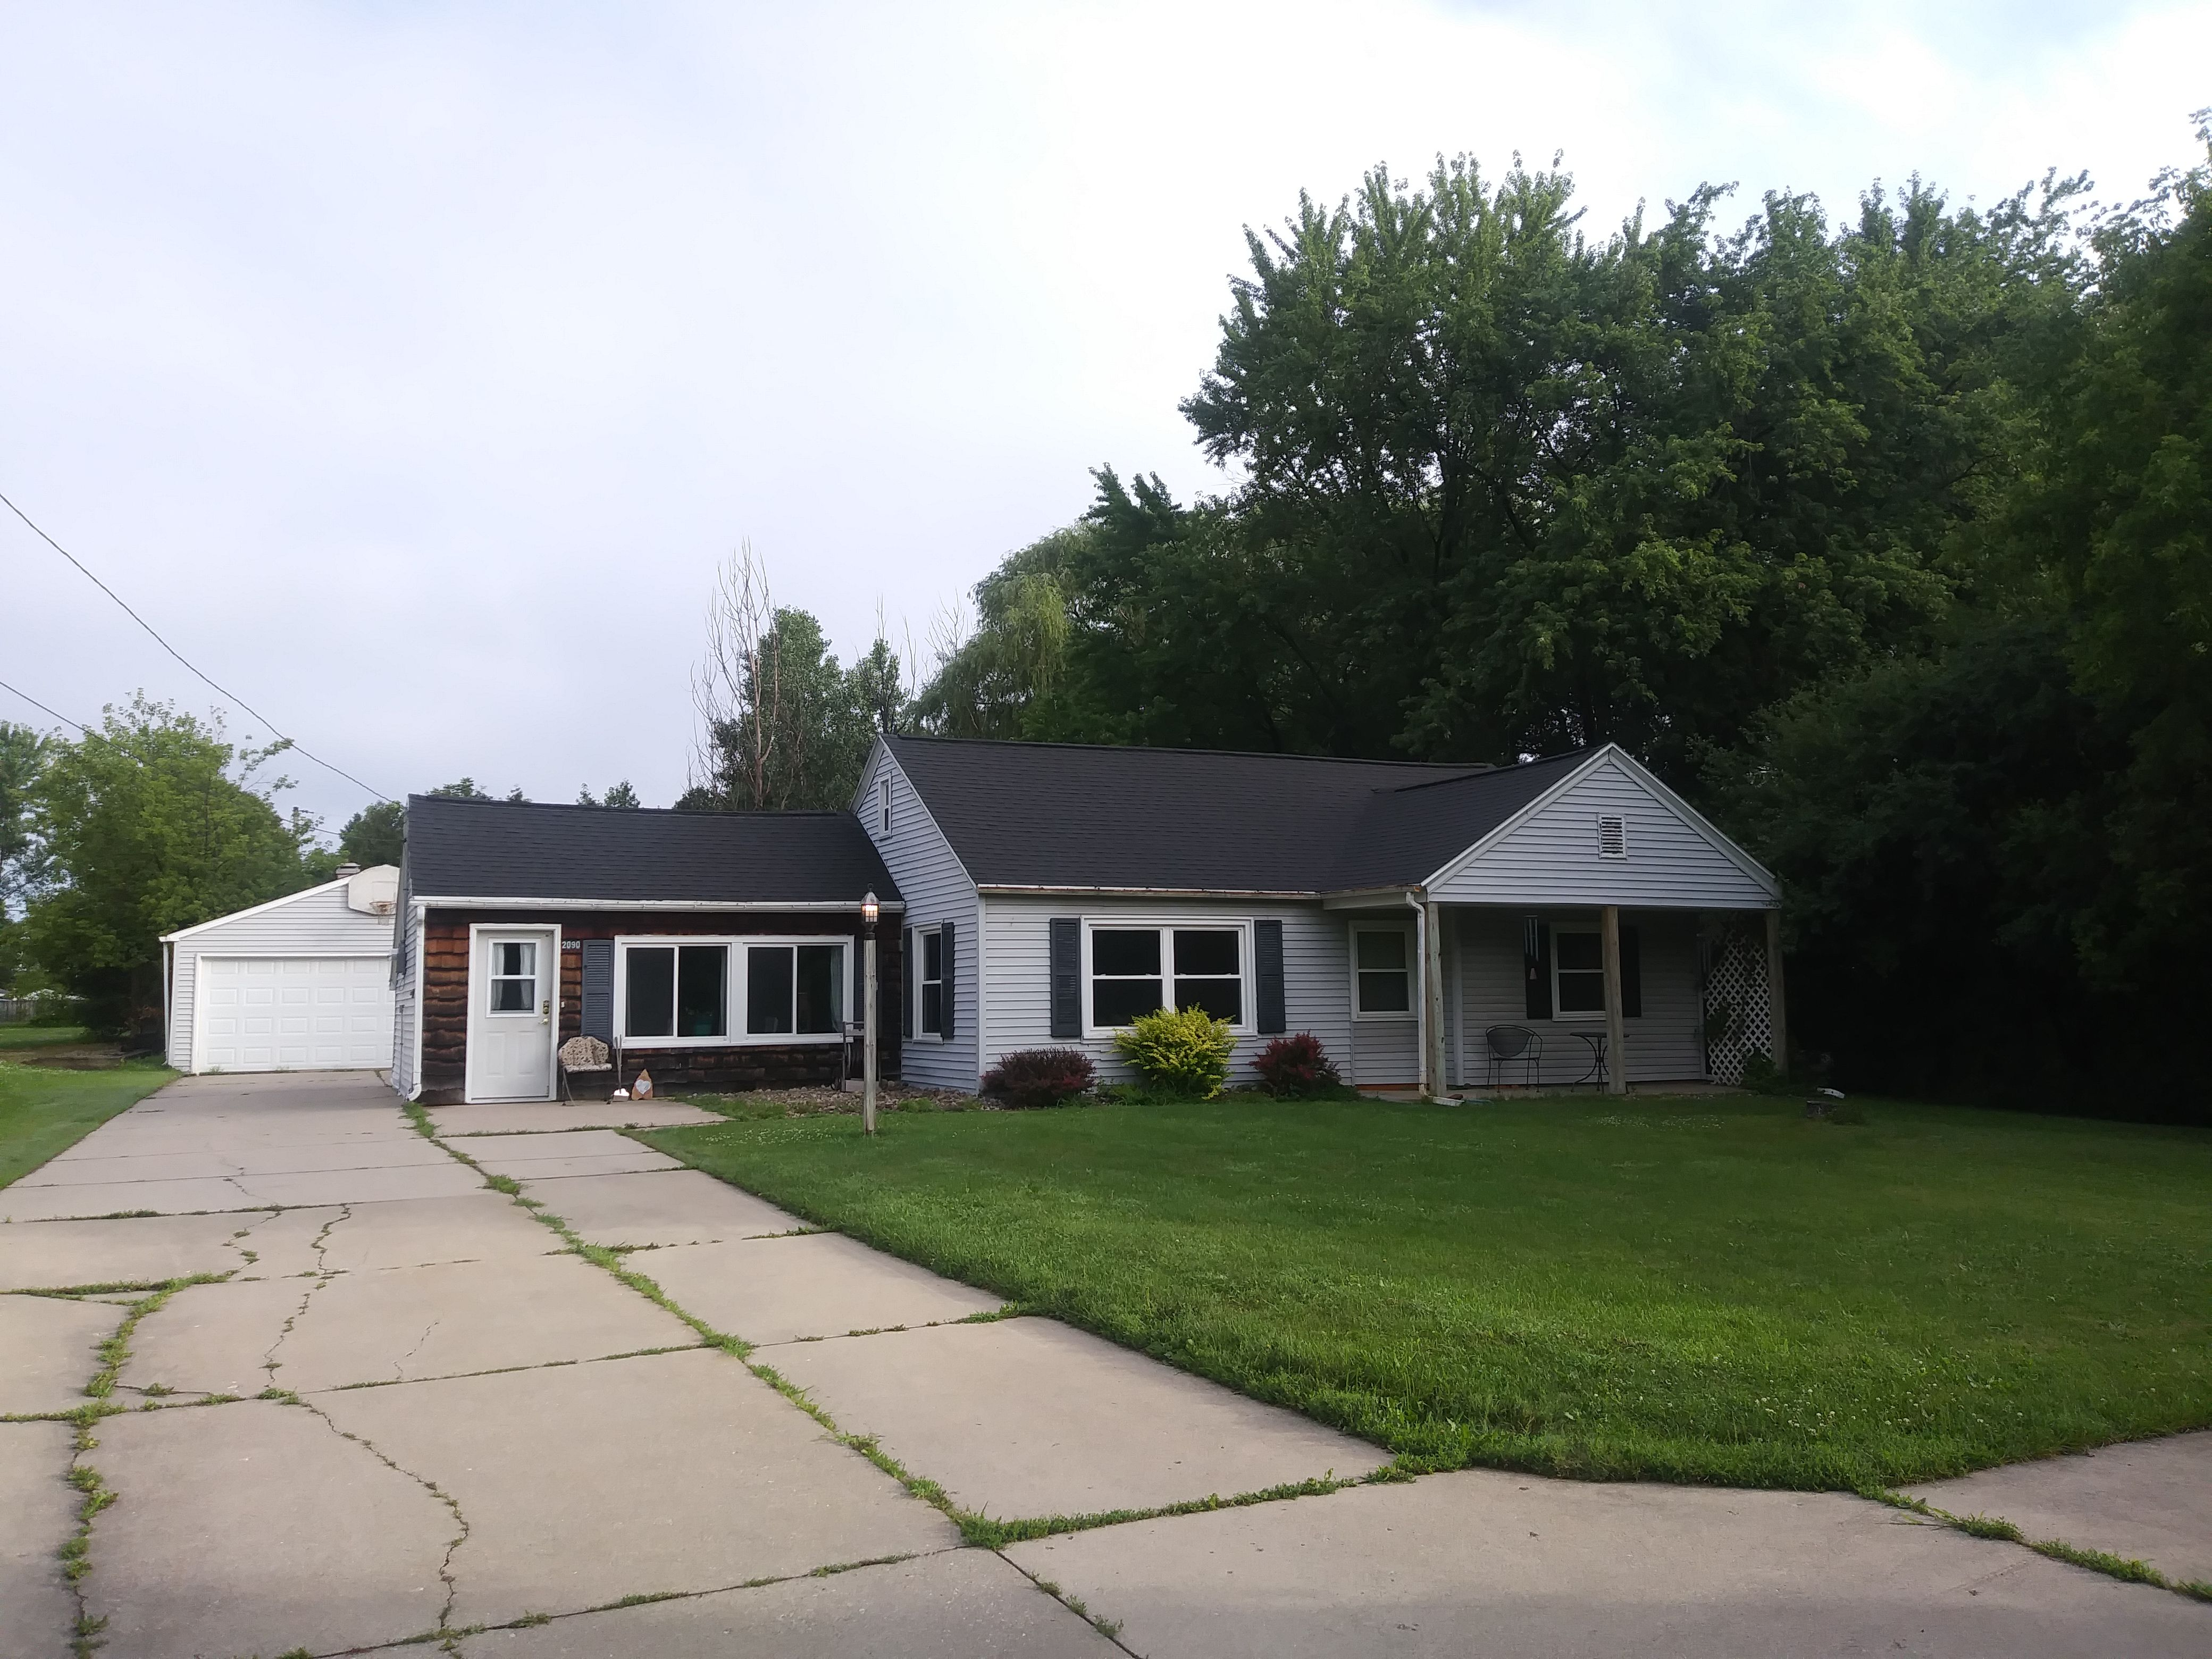 2090 Lost Dauphin Rd (Image - 1)